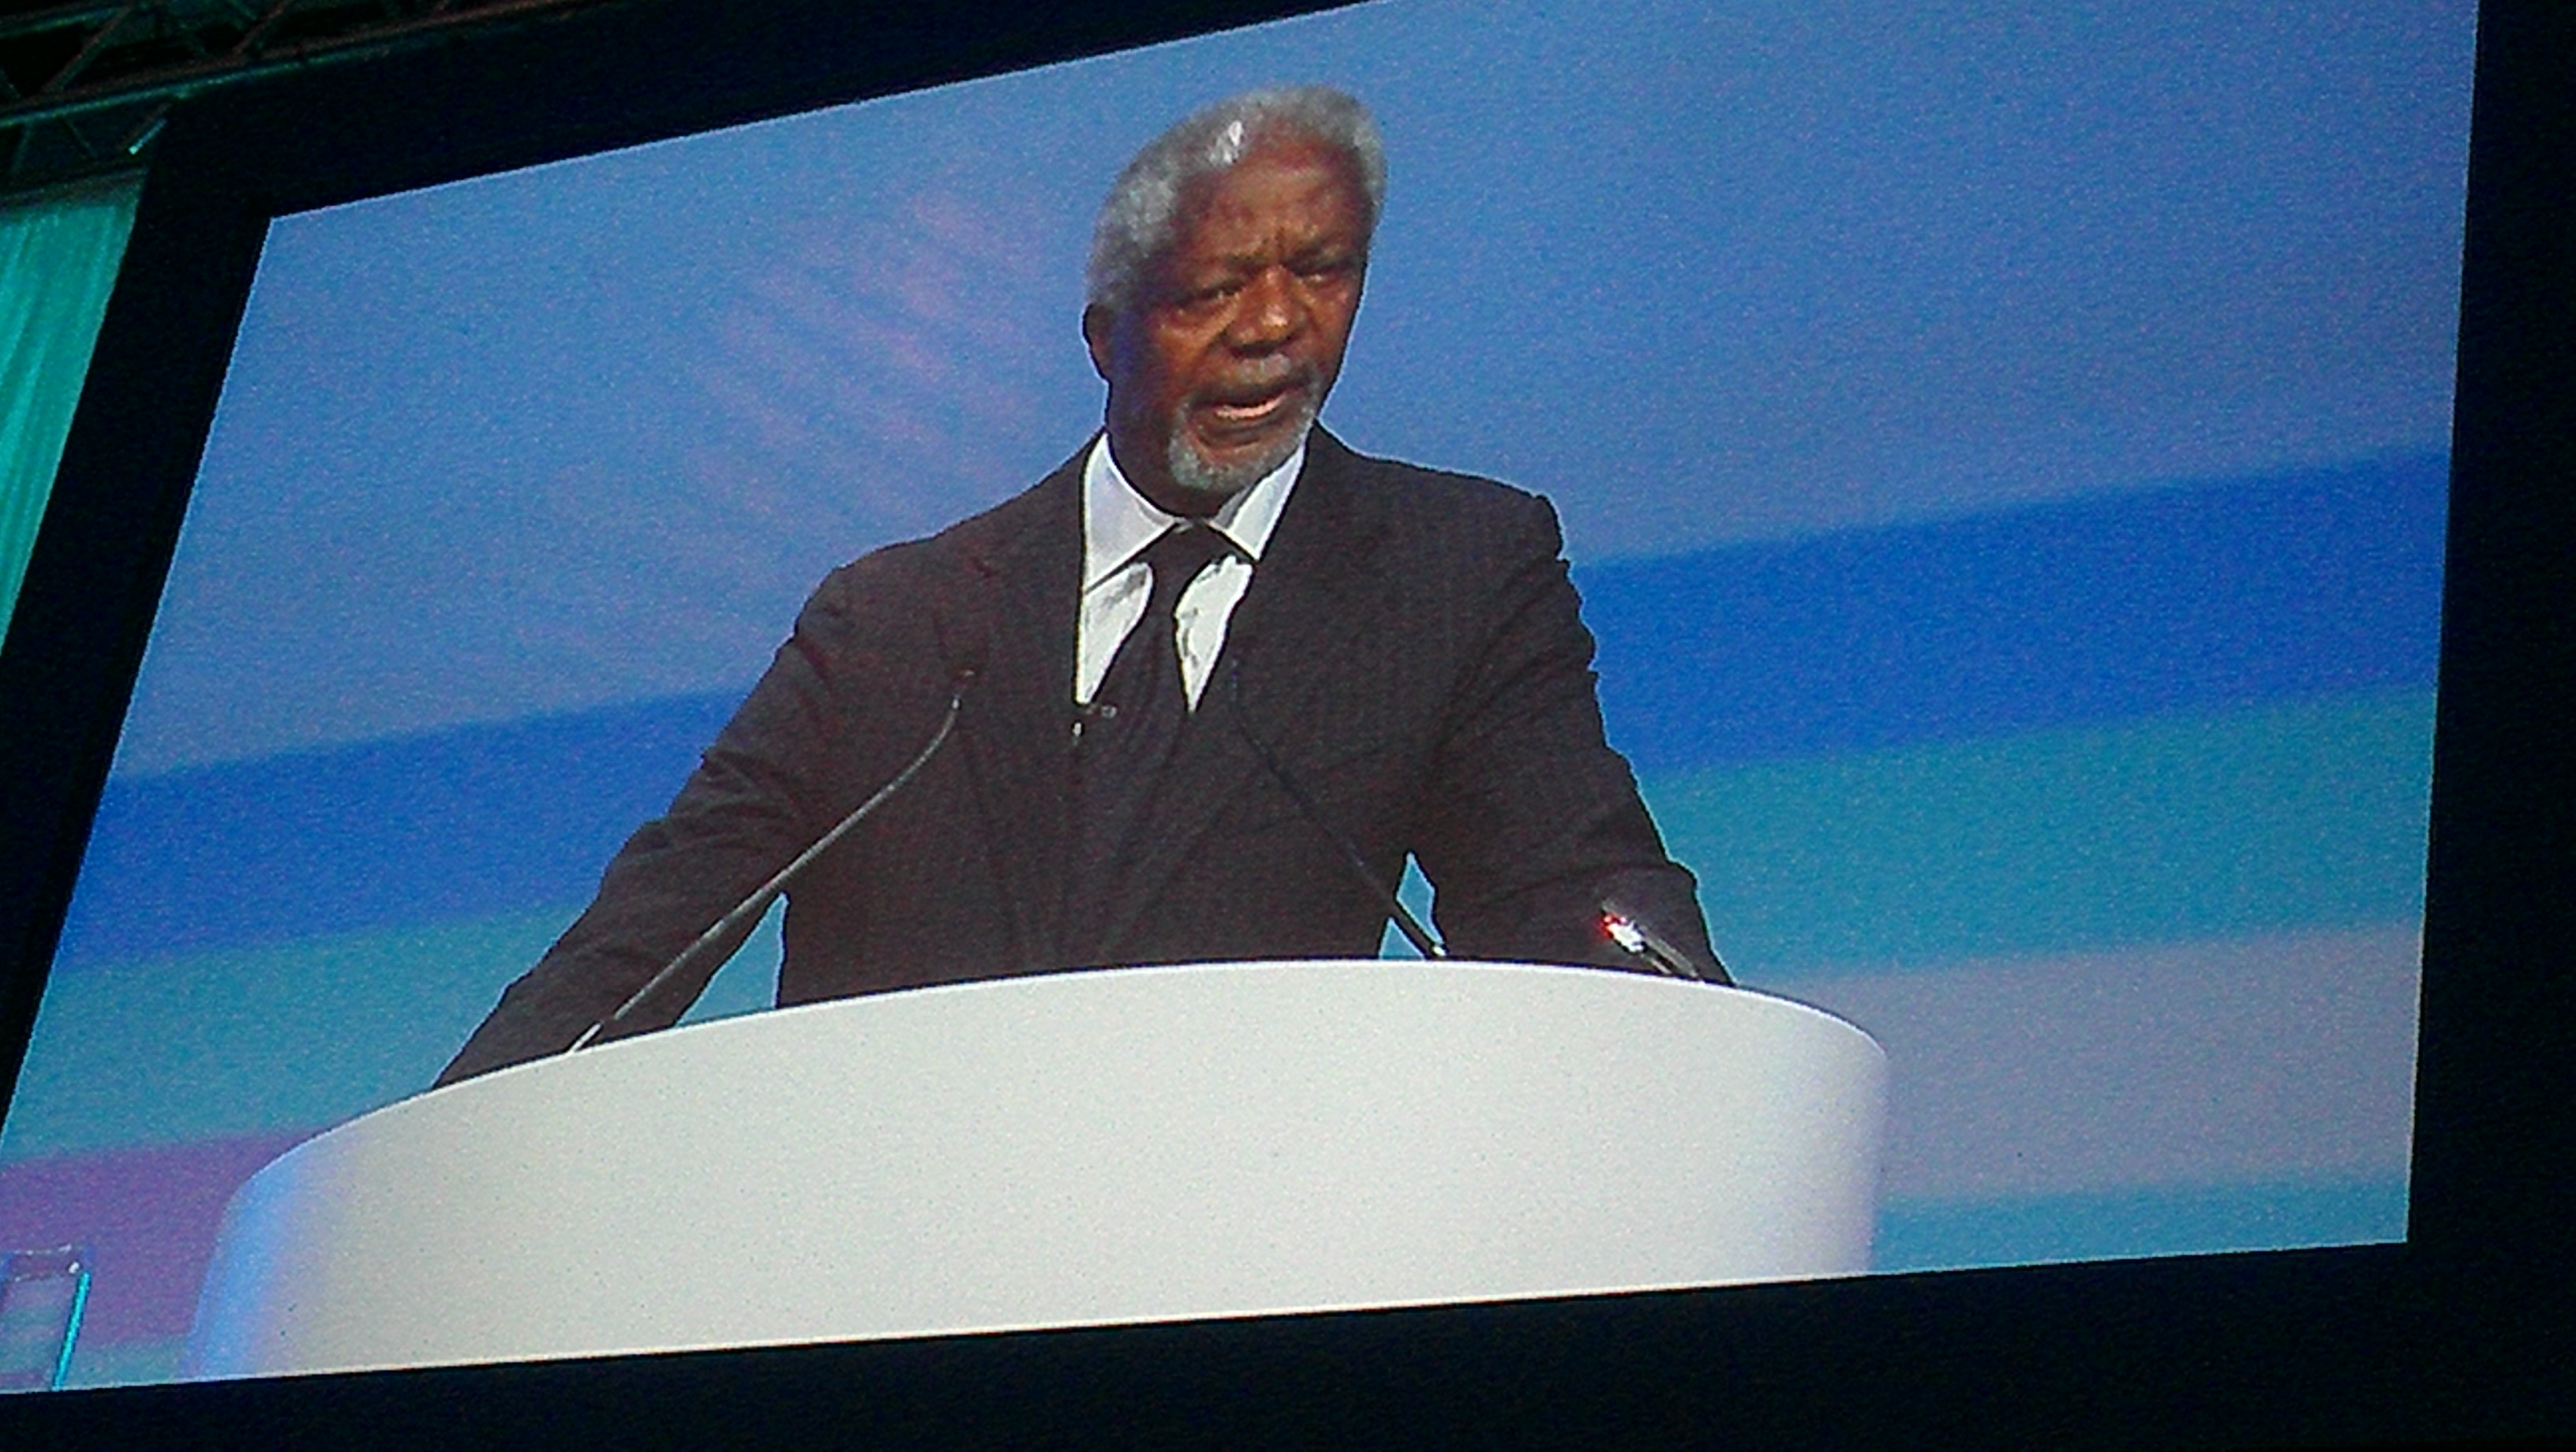 Kofi Annan Names the 3 Things Economies Need